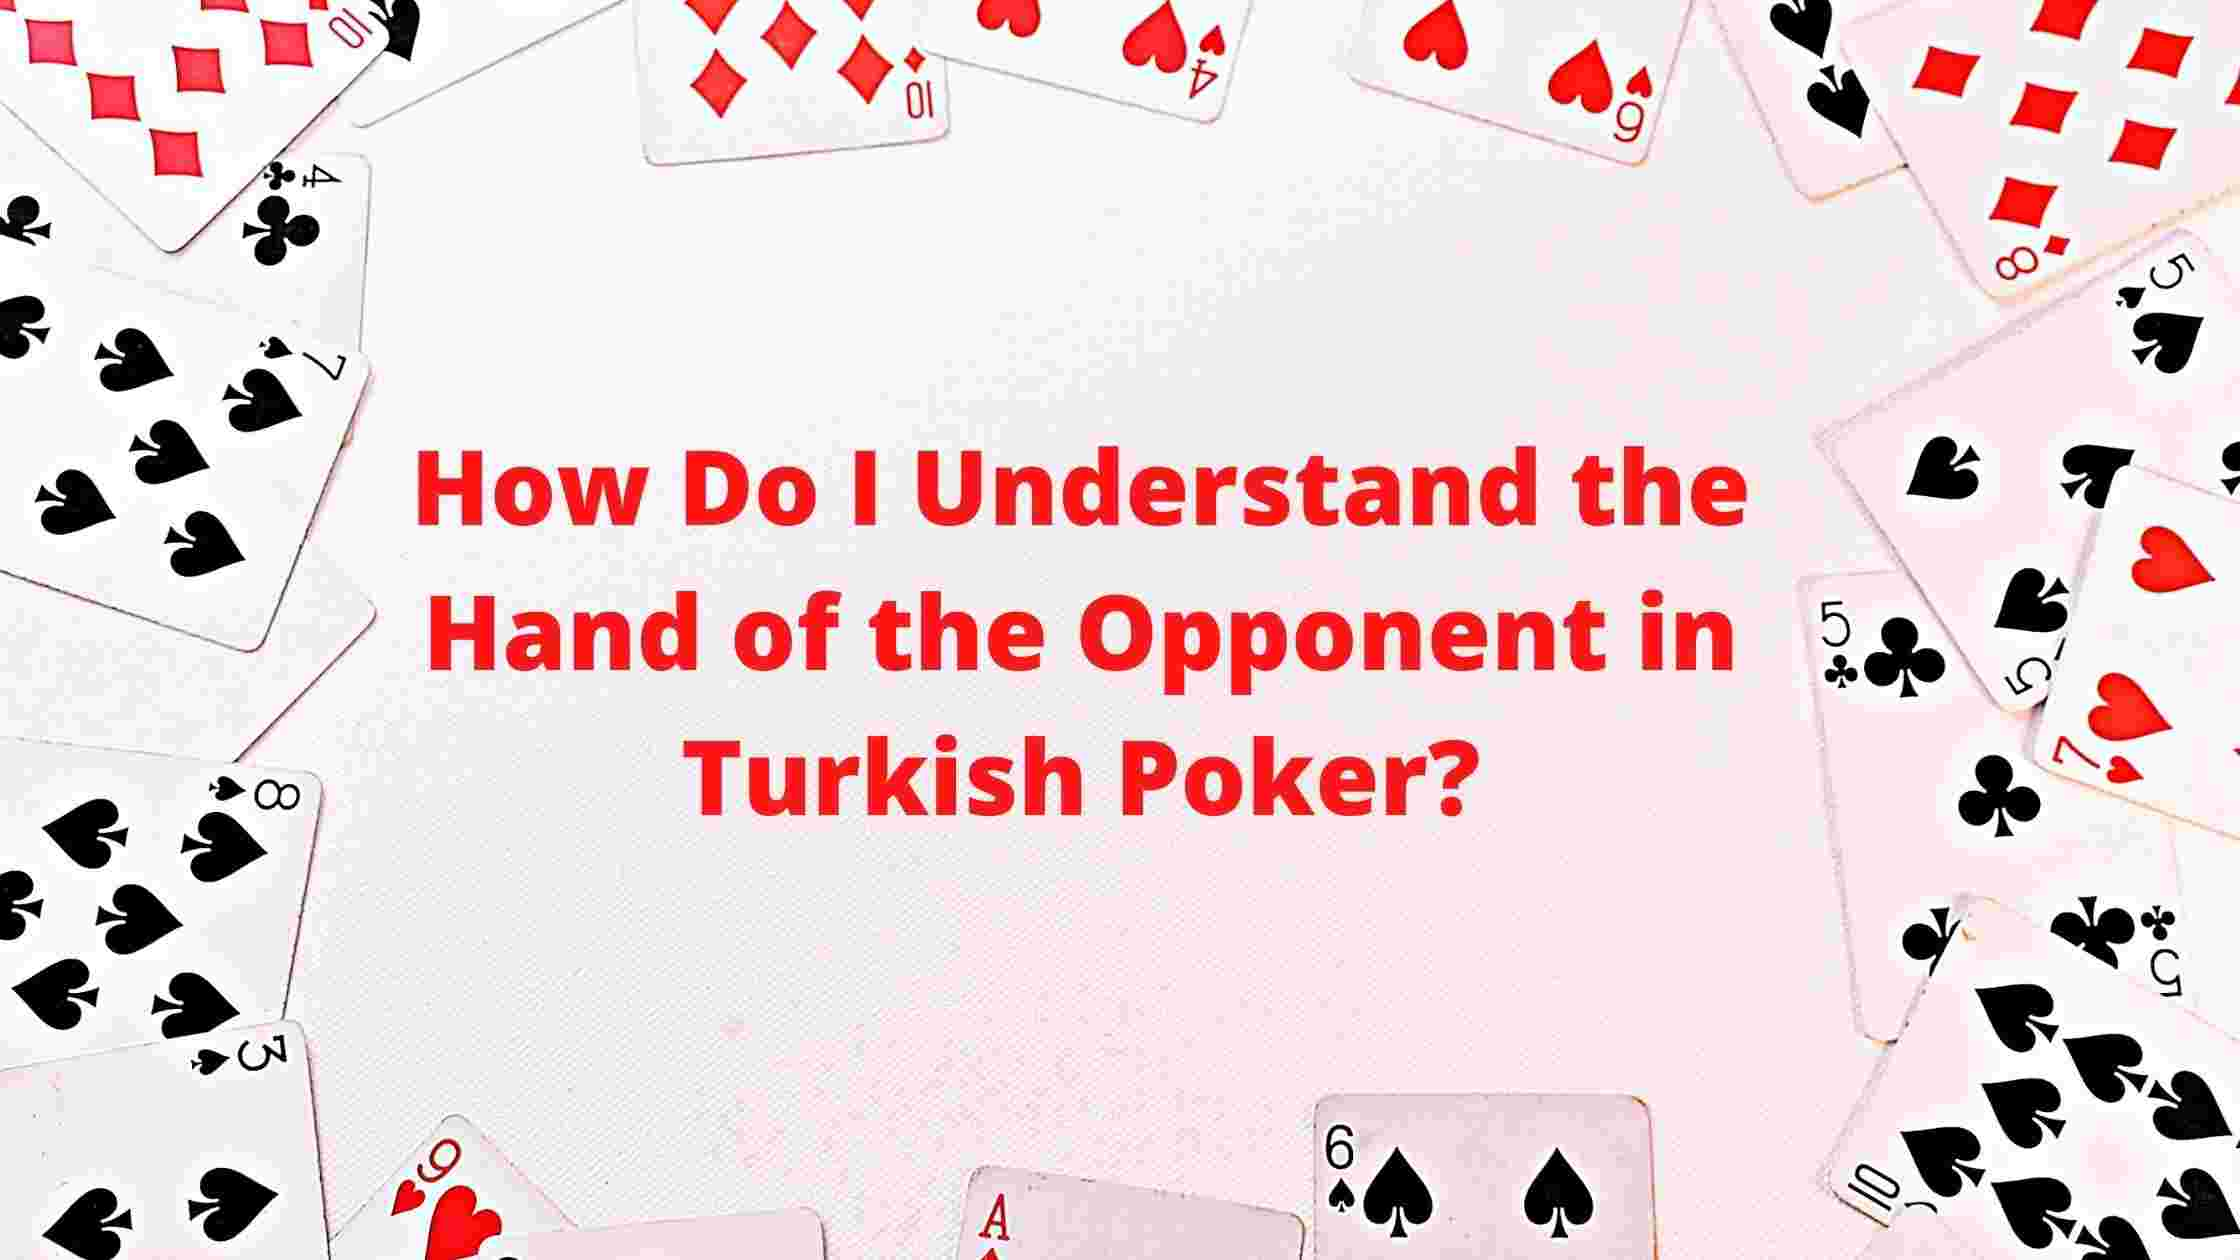 How Do I Understand the Hand of the Opponent in Turkish Poker